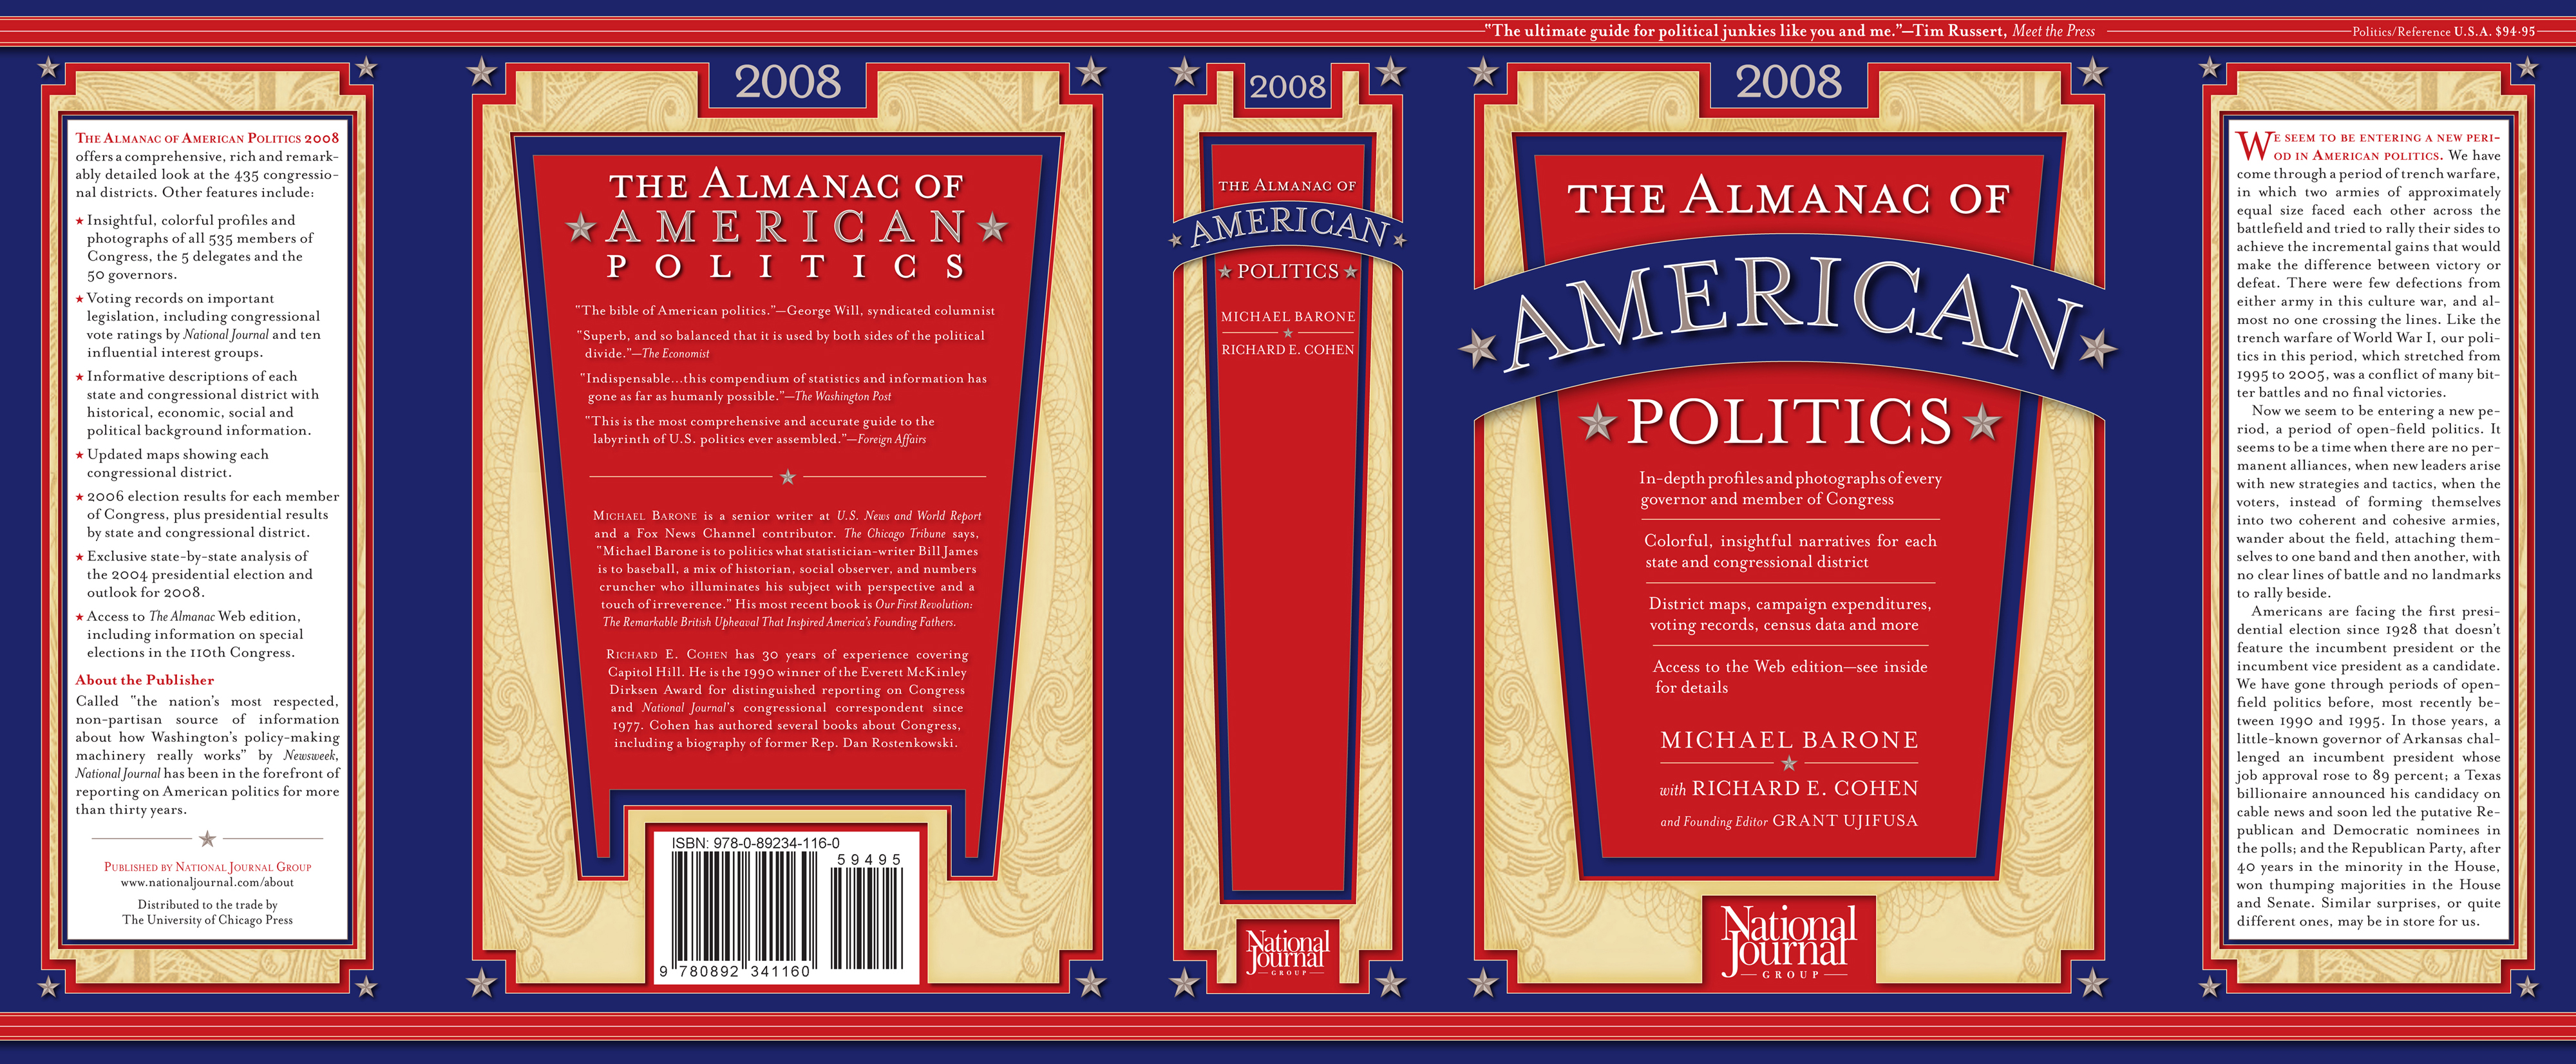 Almanac of American Politics 2008